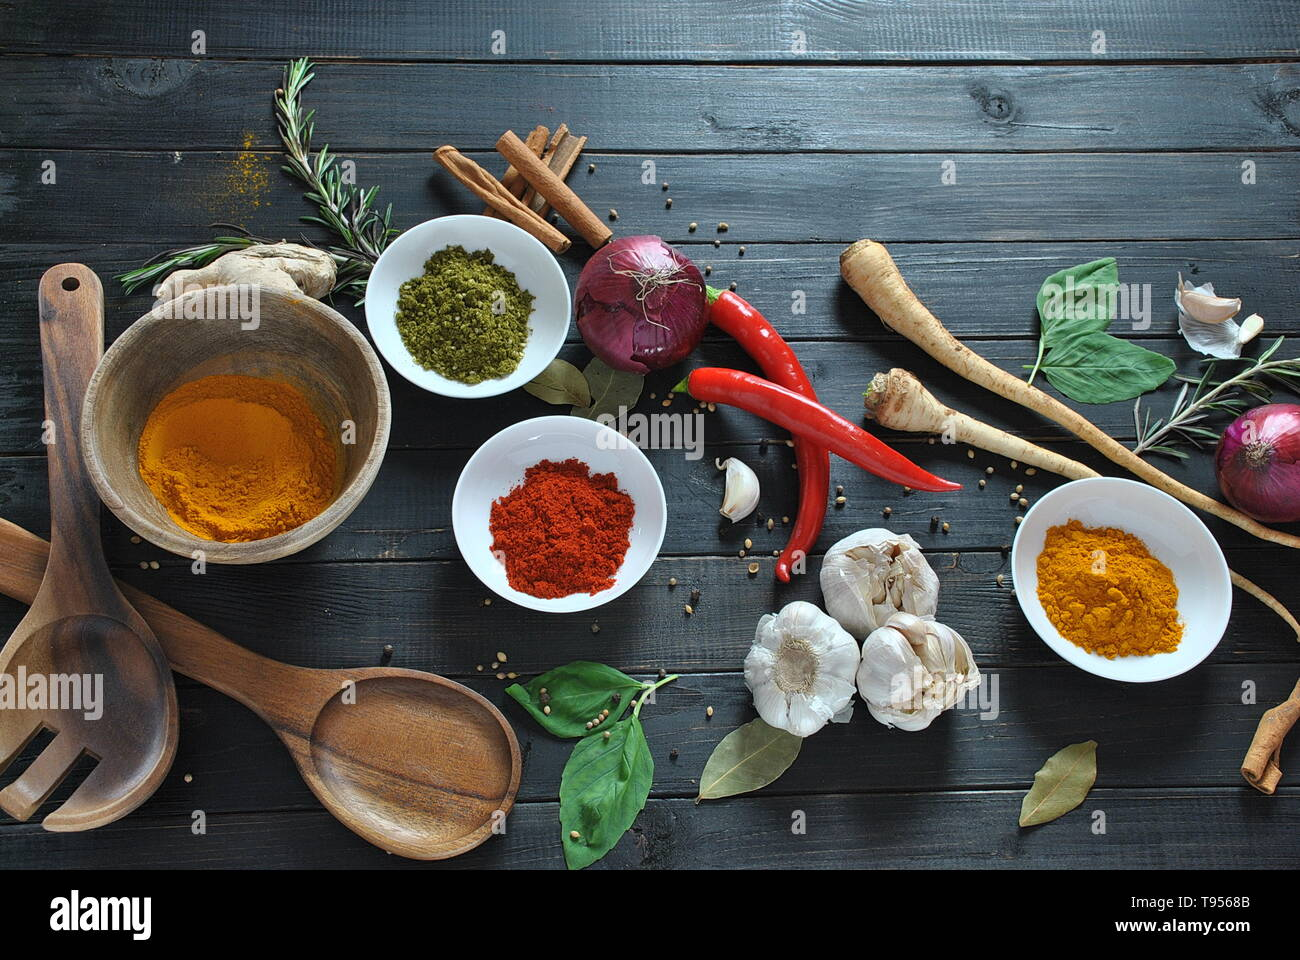 Colorful various of fresh and dried herbs, spices for cooking. Spice and herb seasoning, paprika powder, cinnamon, red onion. garlic, basil, ginger Stock Photo